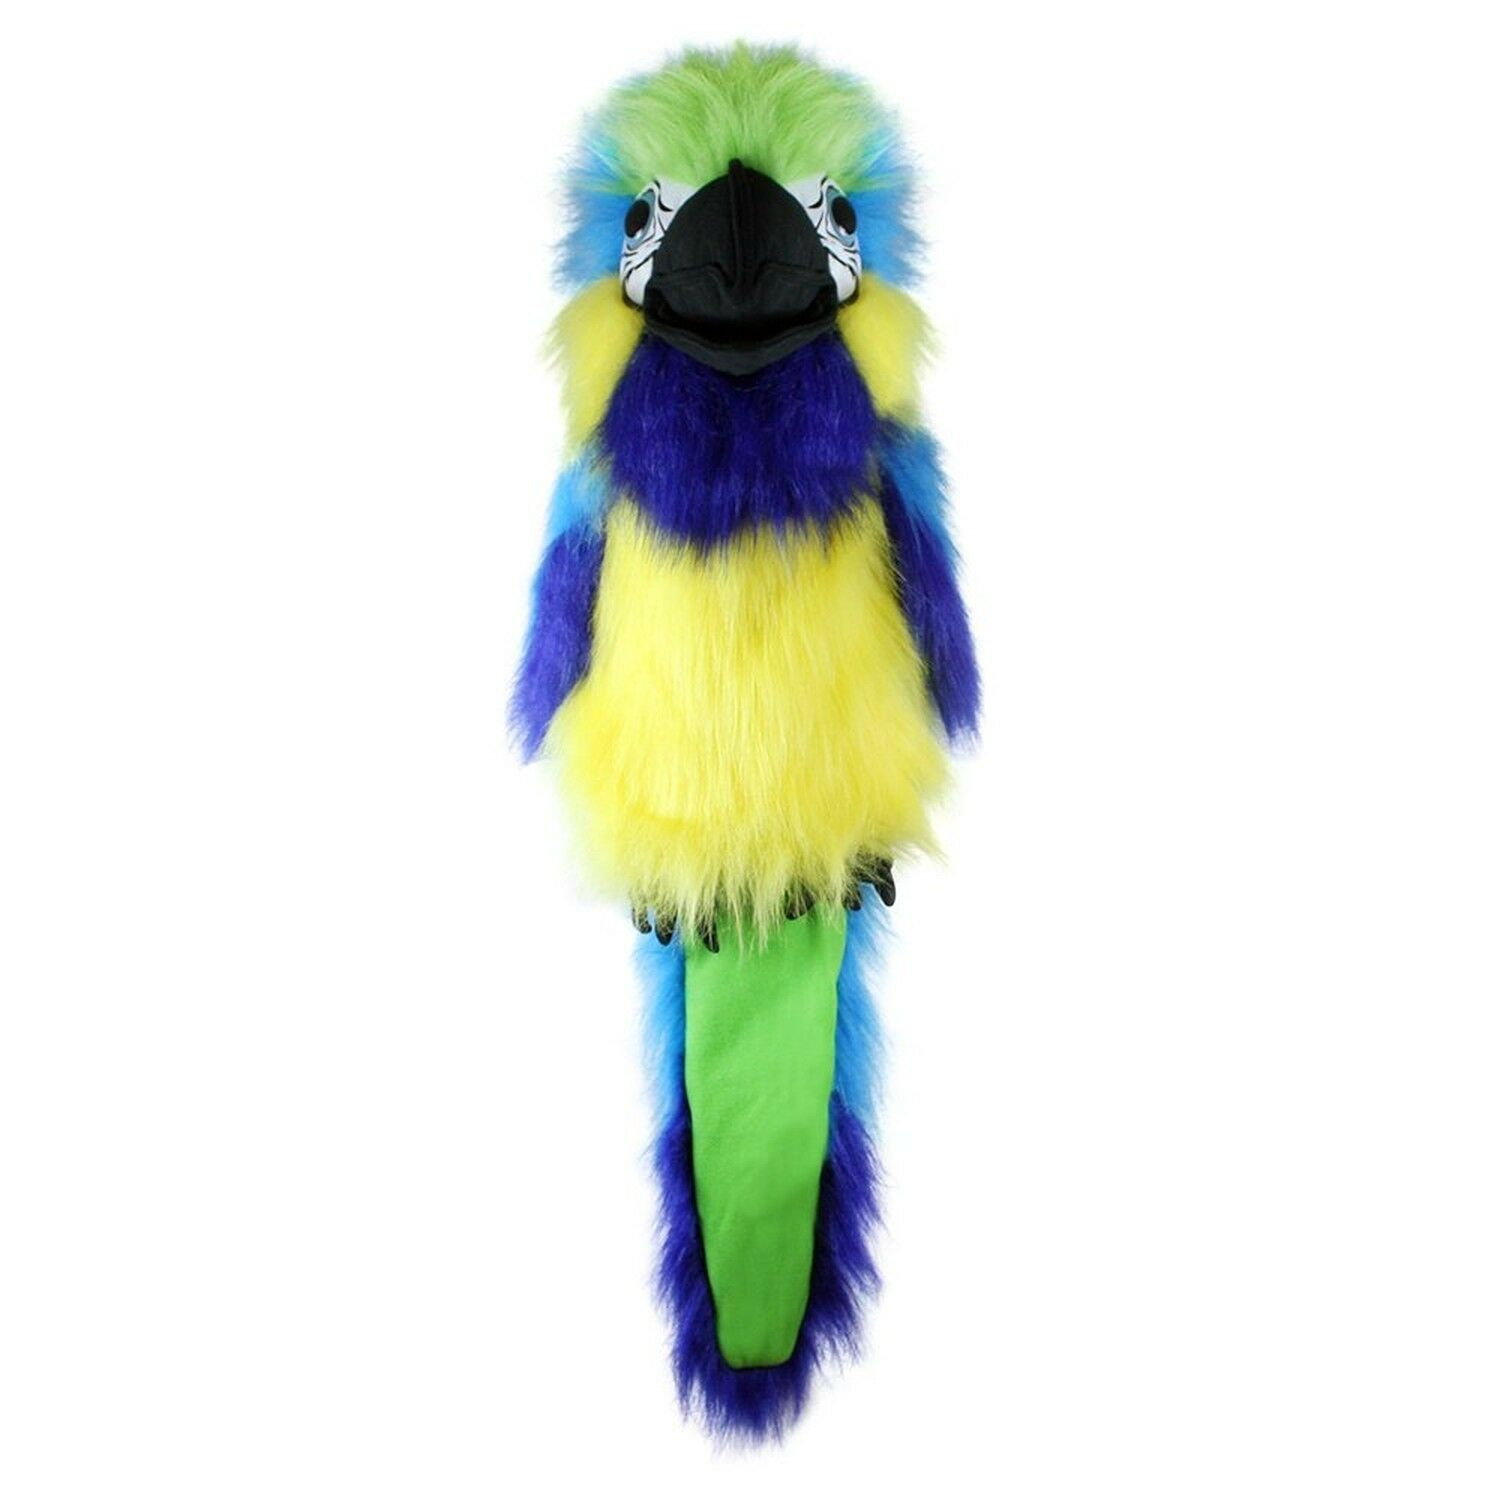 The Puppet Company - Large Birds - Blau & Gold Macaw Hand Puppet